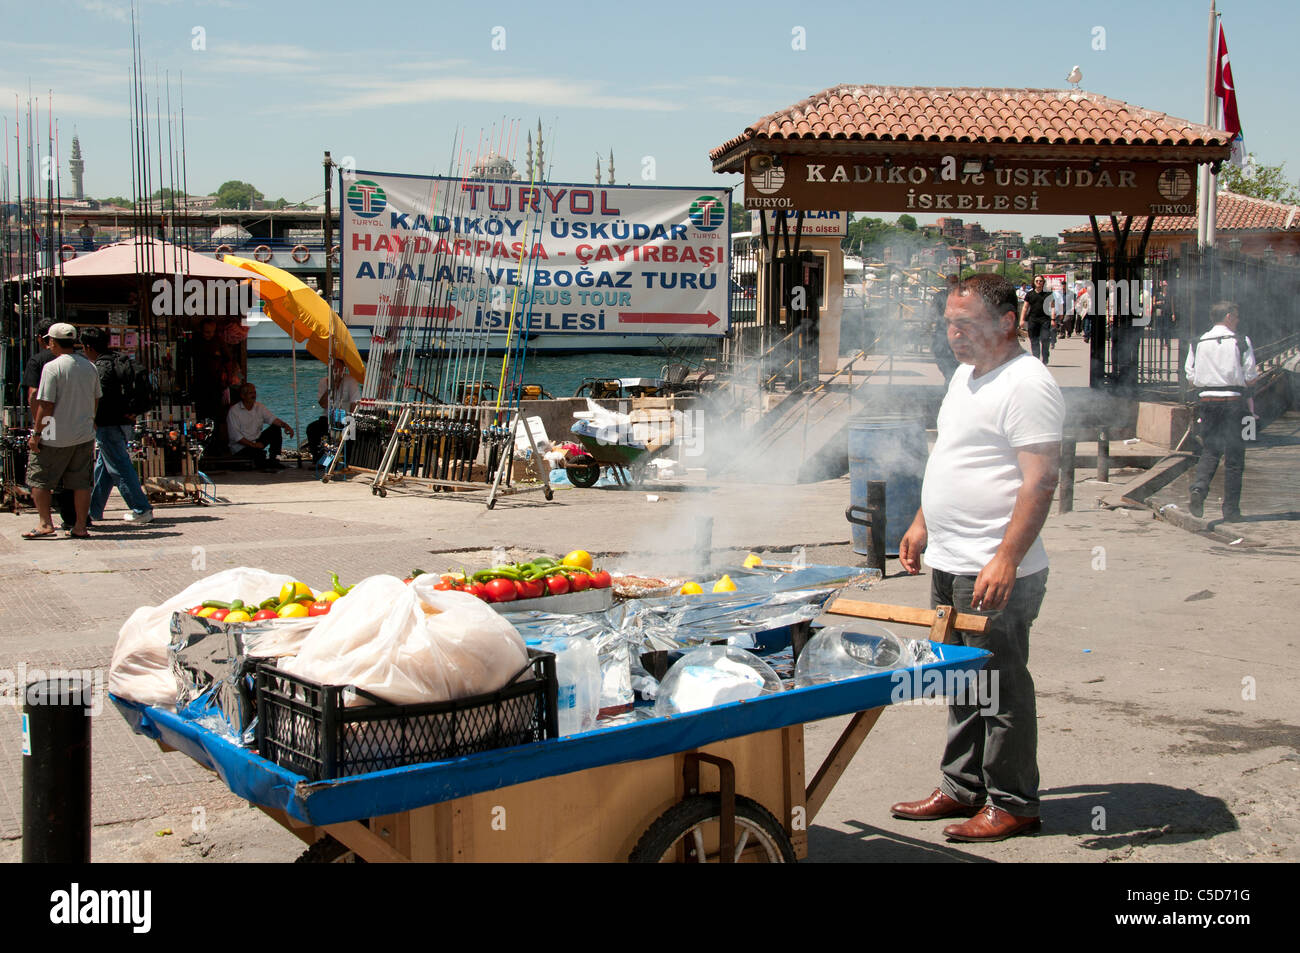 Restaurant terrace boats Golden Horn bridge waterfront selling hot mackerel fish sandwiches balik ekmek - Stock Image